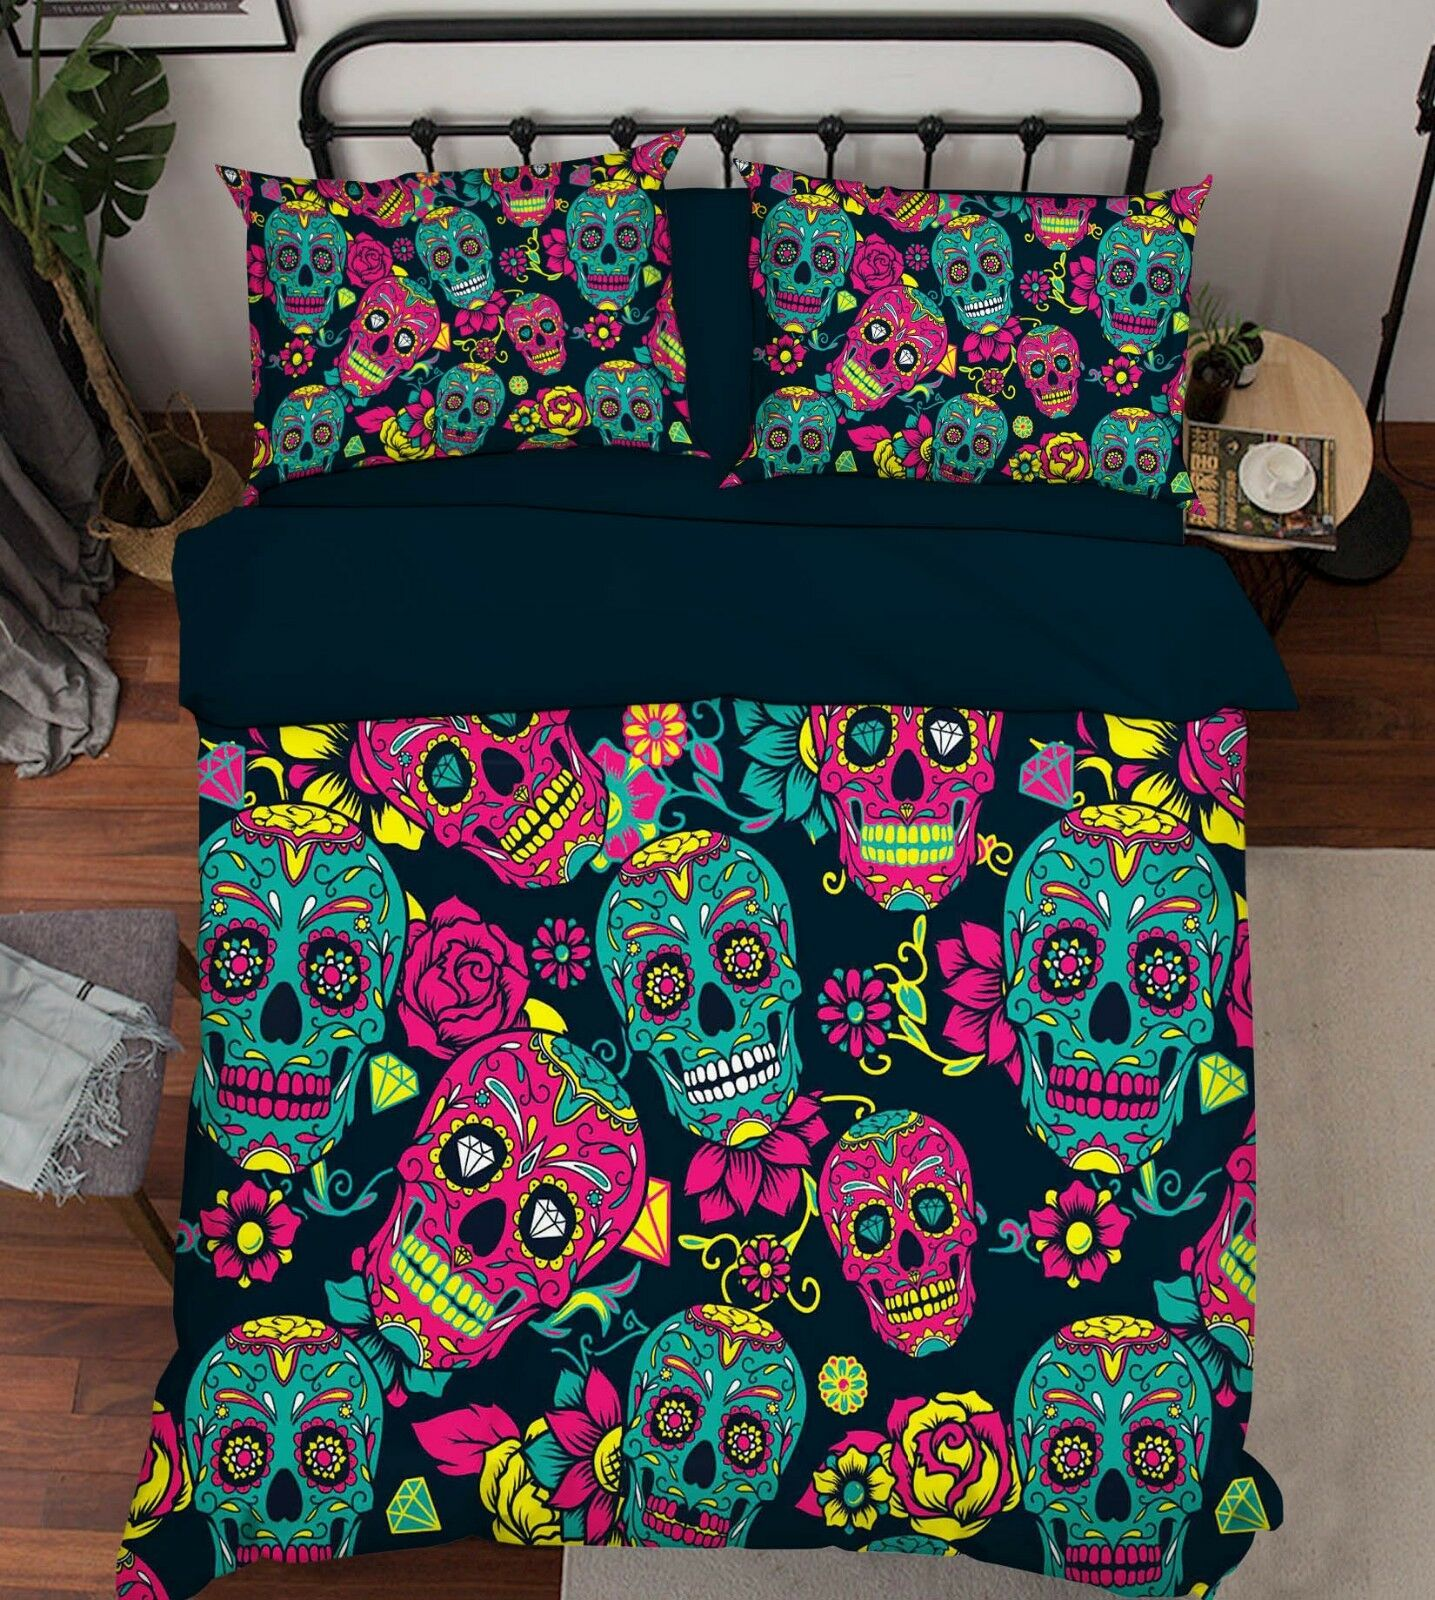 3D Painted Skull 678 Bed Pillowcases Quilt Duvet Cover Set Single Queen AU Carly